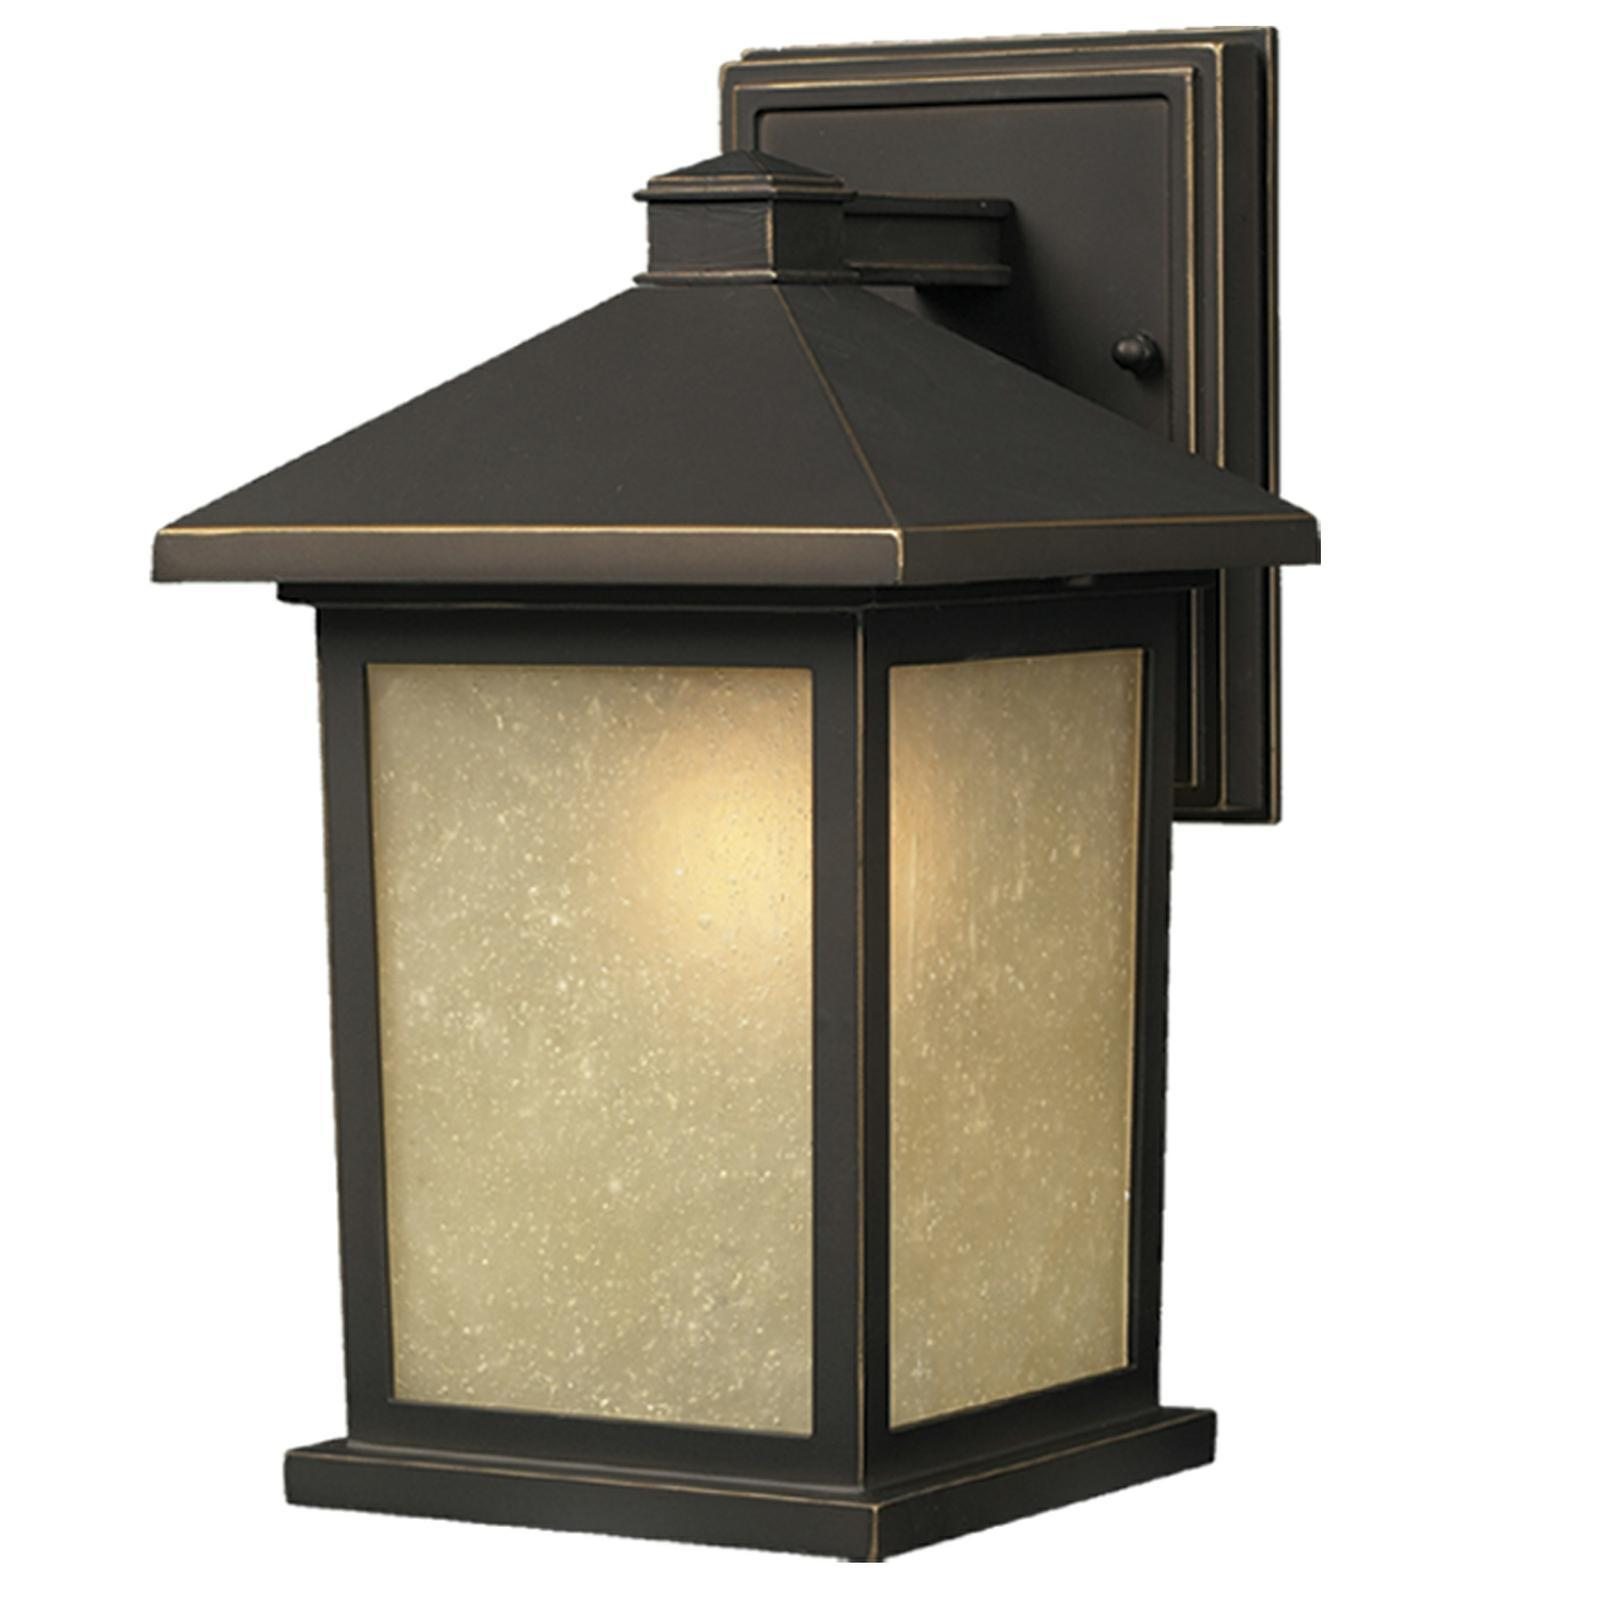 bronze outdoor wall light warisan lighting carriage lights outdoor warisan lighting